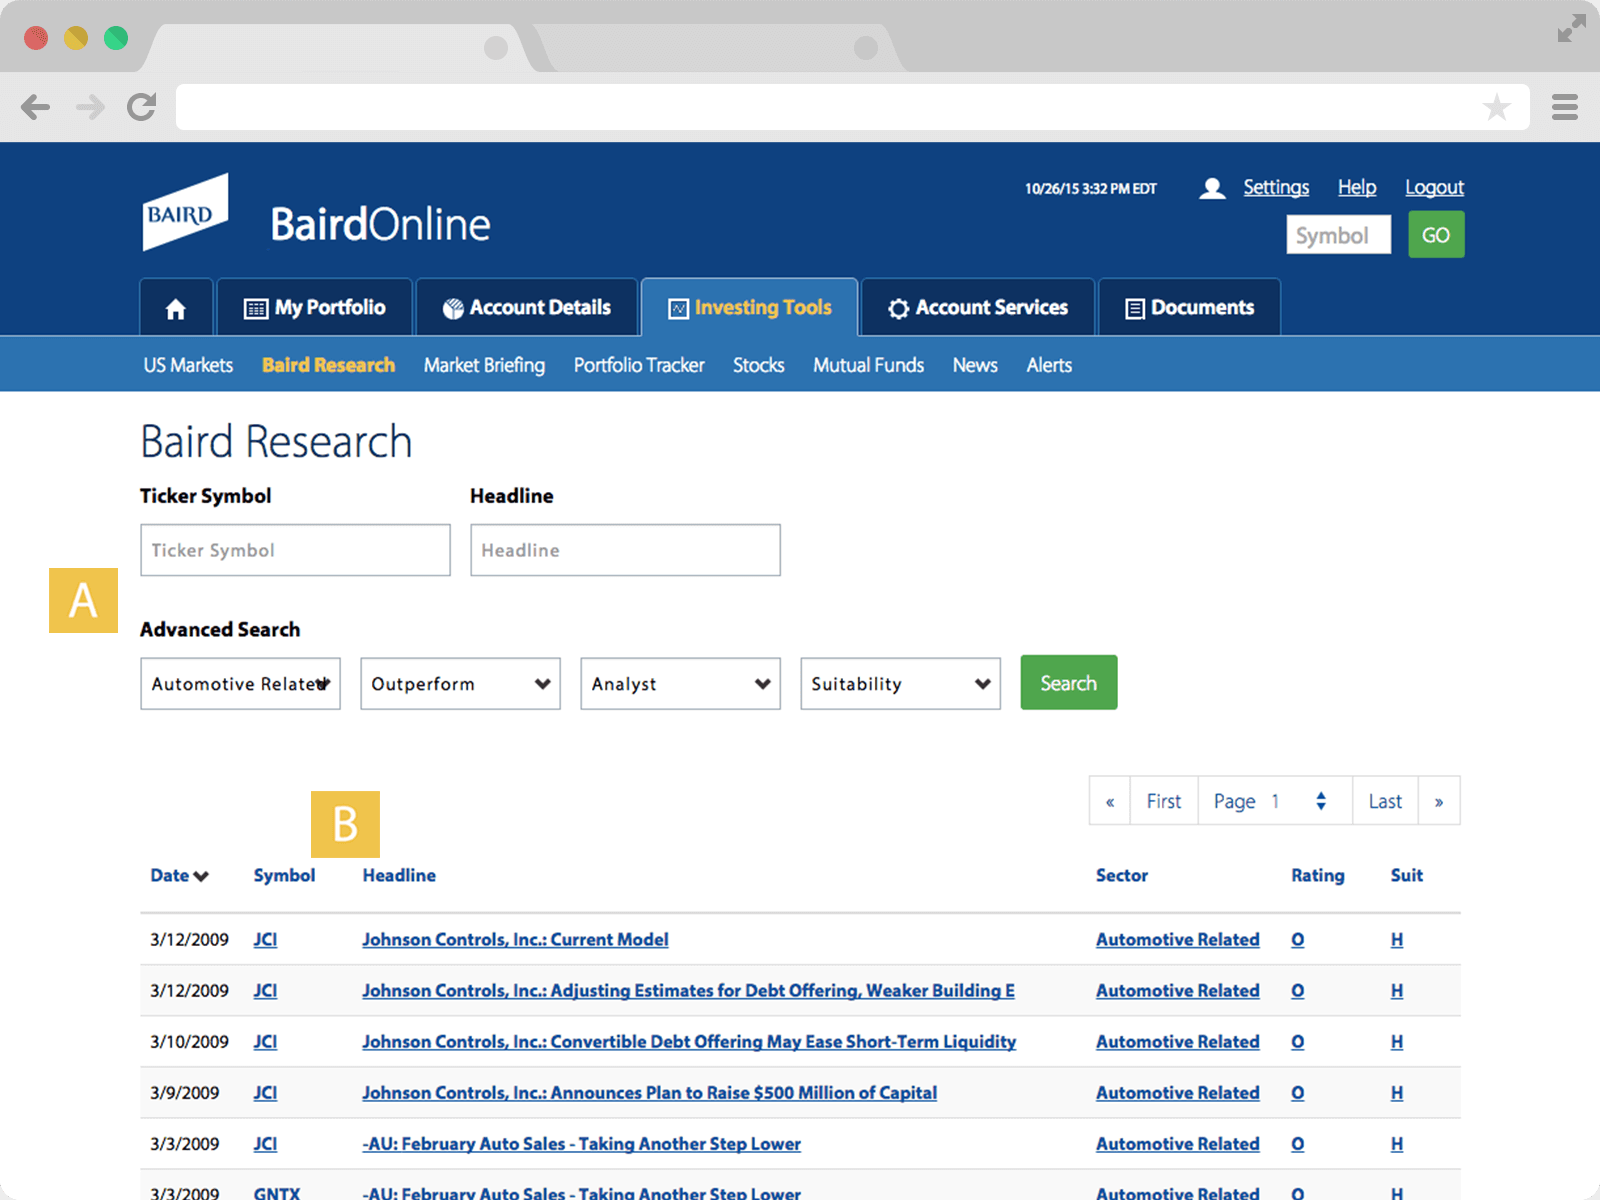 Screenshot of Baird Research page